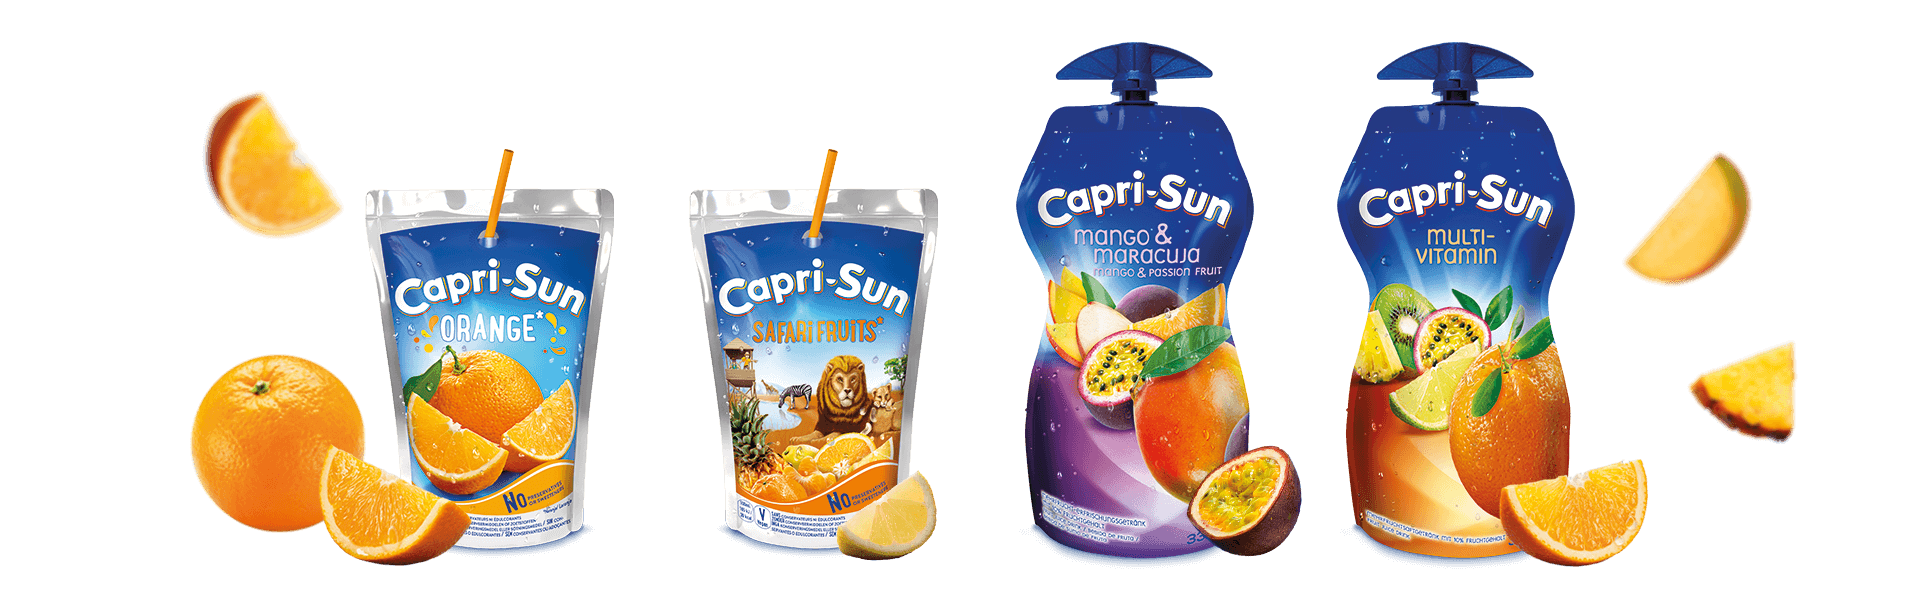 Capri Sun Orange 200ml Safari Fruits 200ml Mango Maracuja 330ml and Multivitamin 330ml with flying fruits